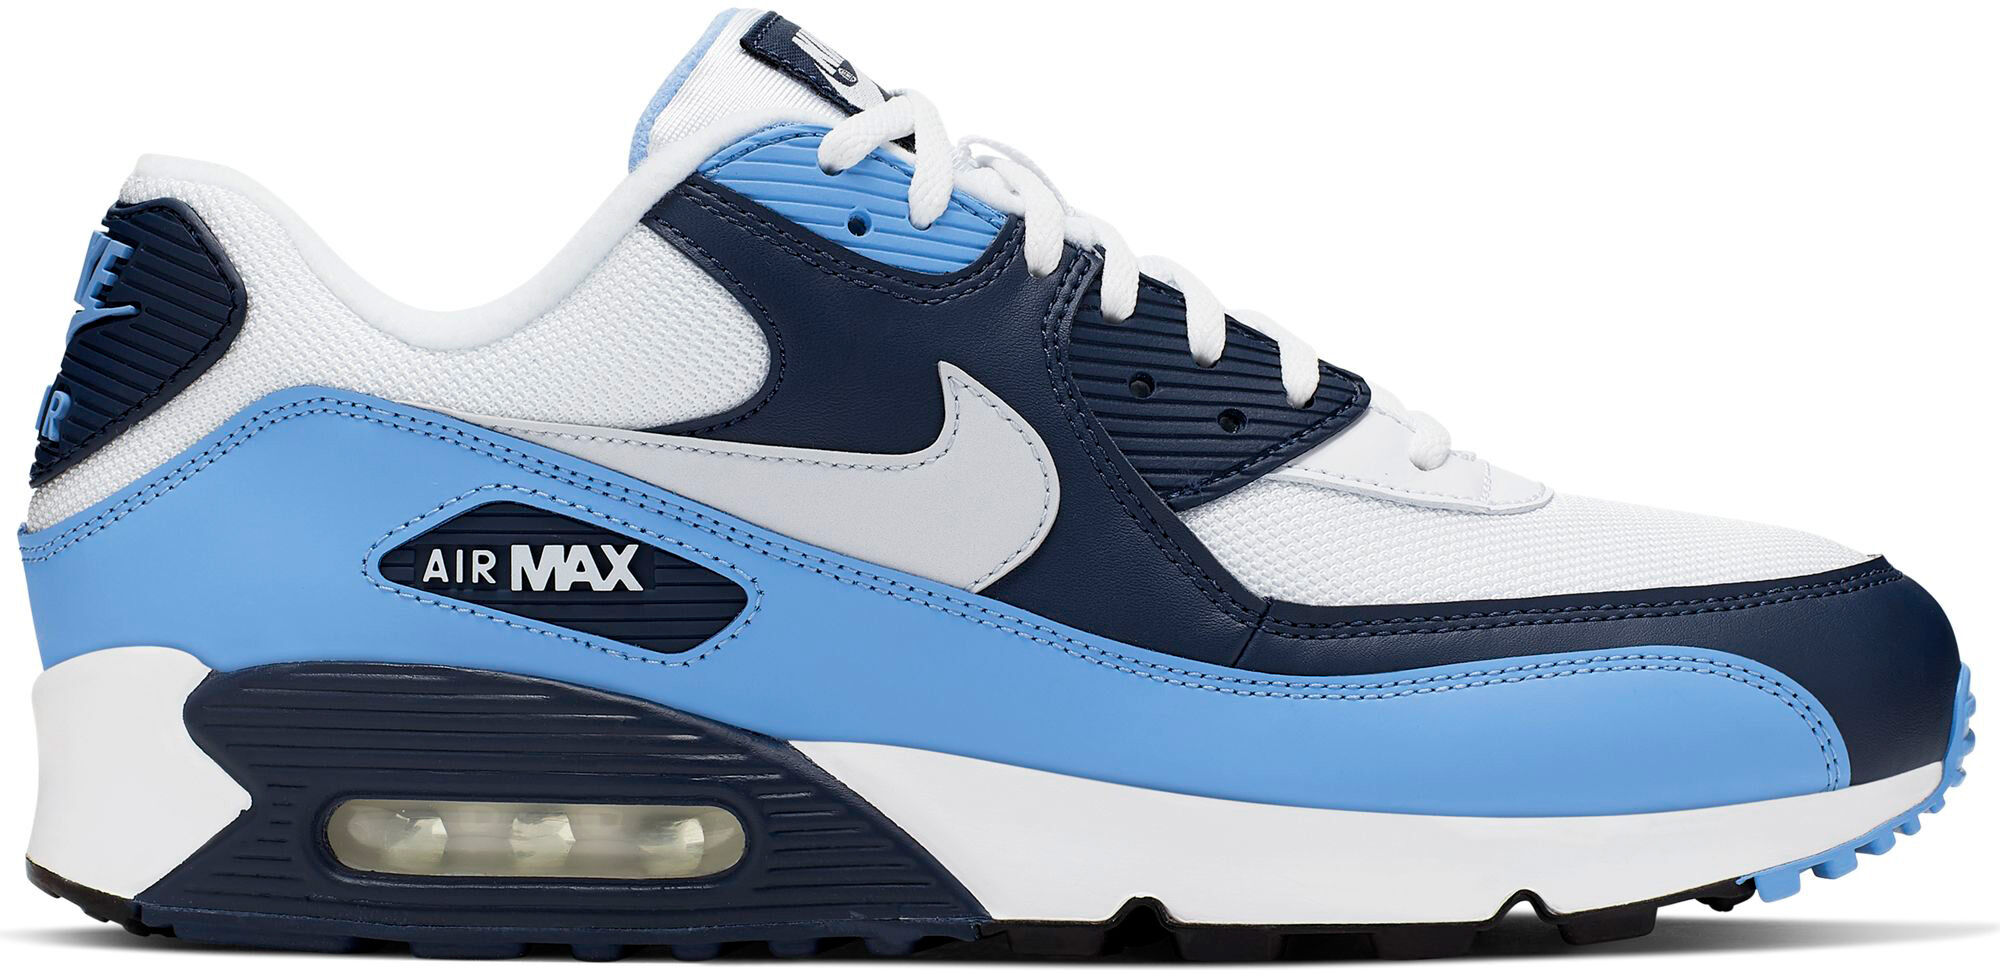 Nike Air Max 90 Bruin The Athlete's Foot